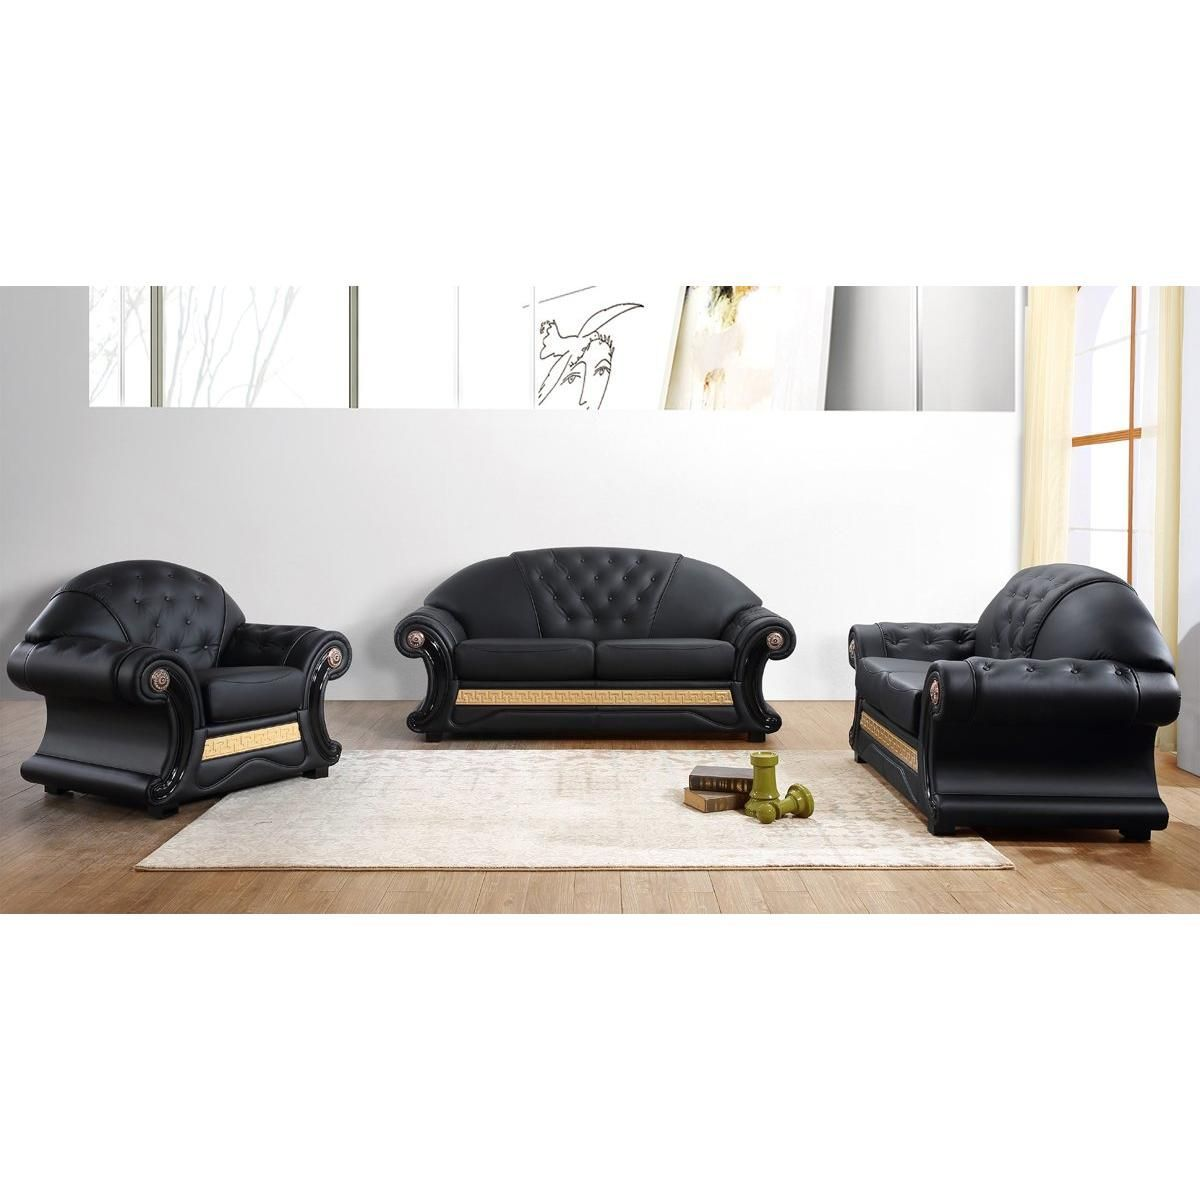 Divani Casa Cleopatra Traditional Black Leather Sofa Set | Black ...